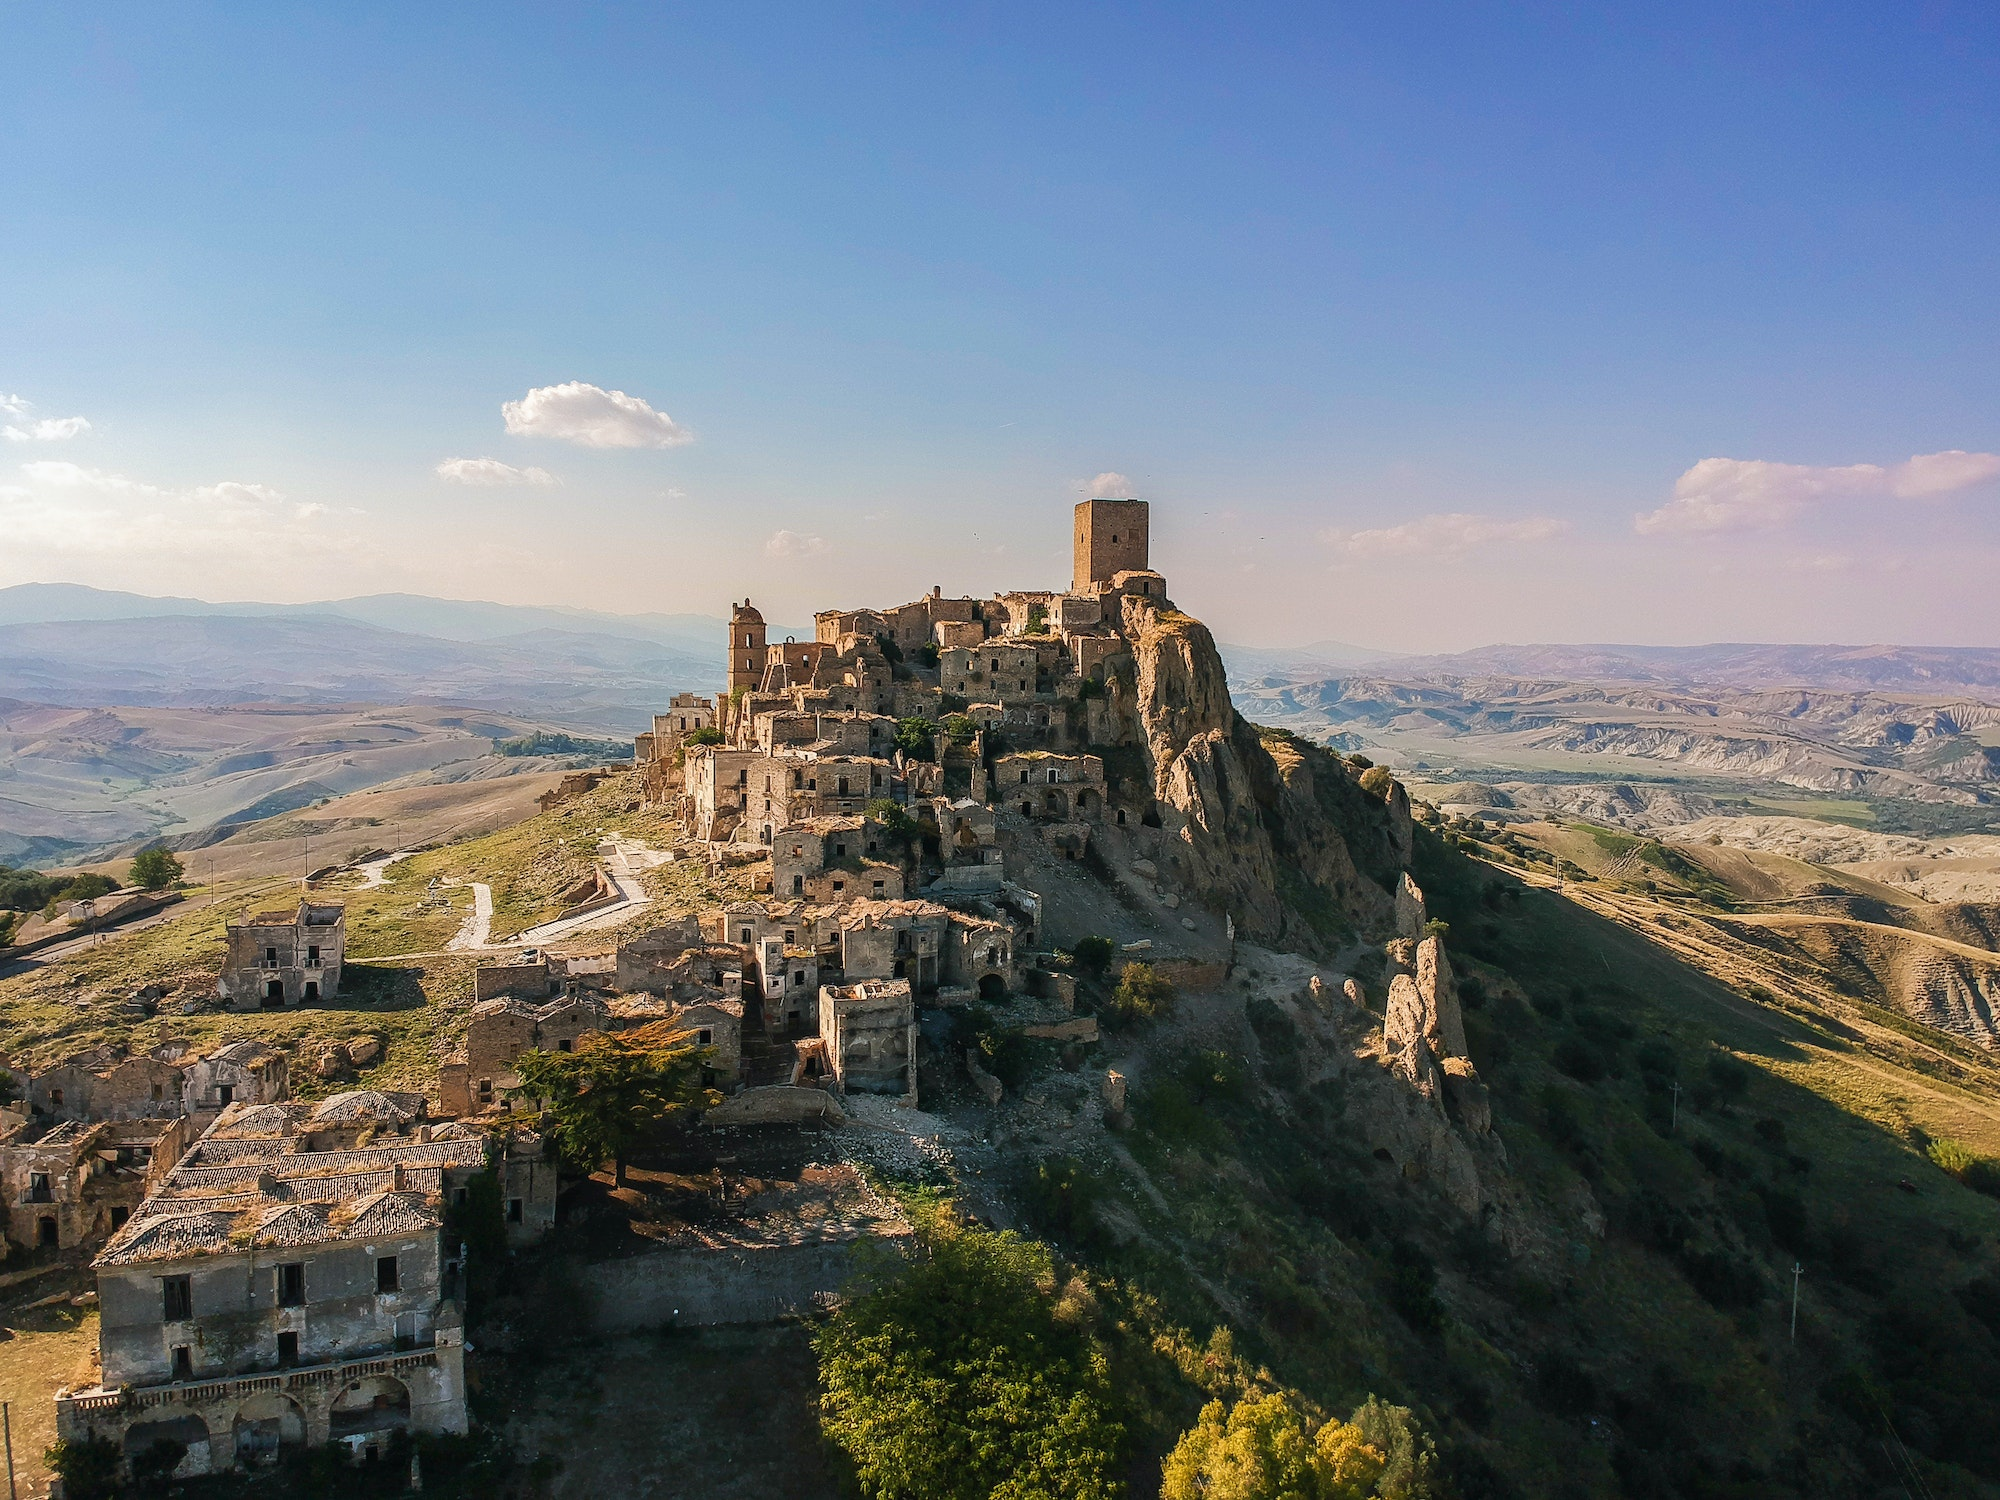 Craco, now a ghost town, was built during the Middle Ages on a cliff more than 1,000 feet tall.